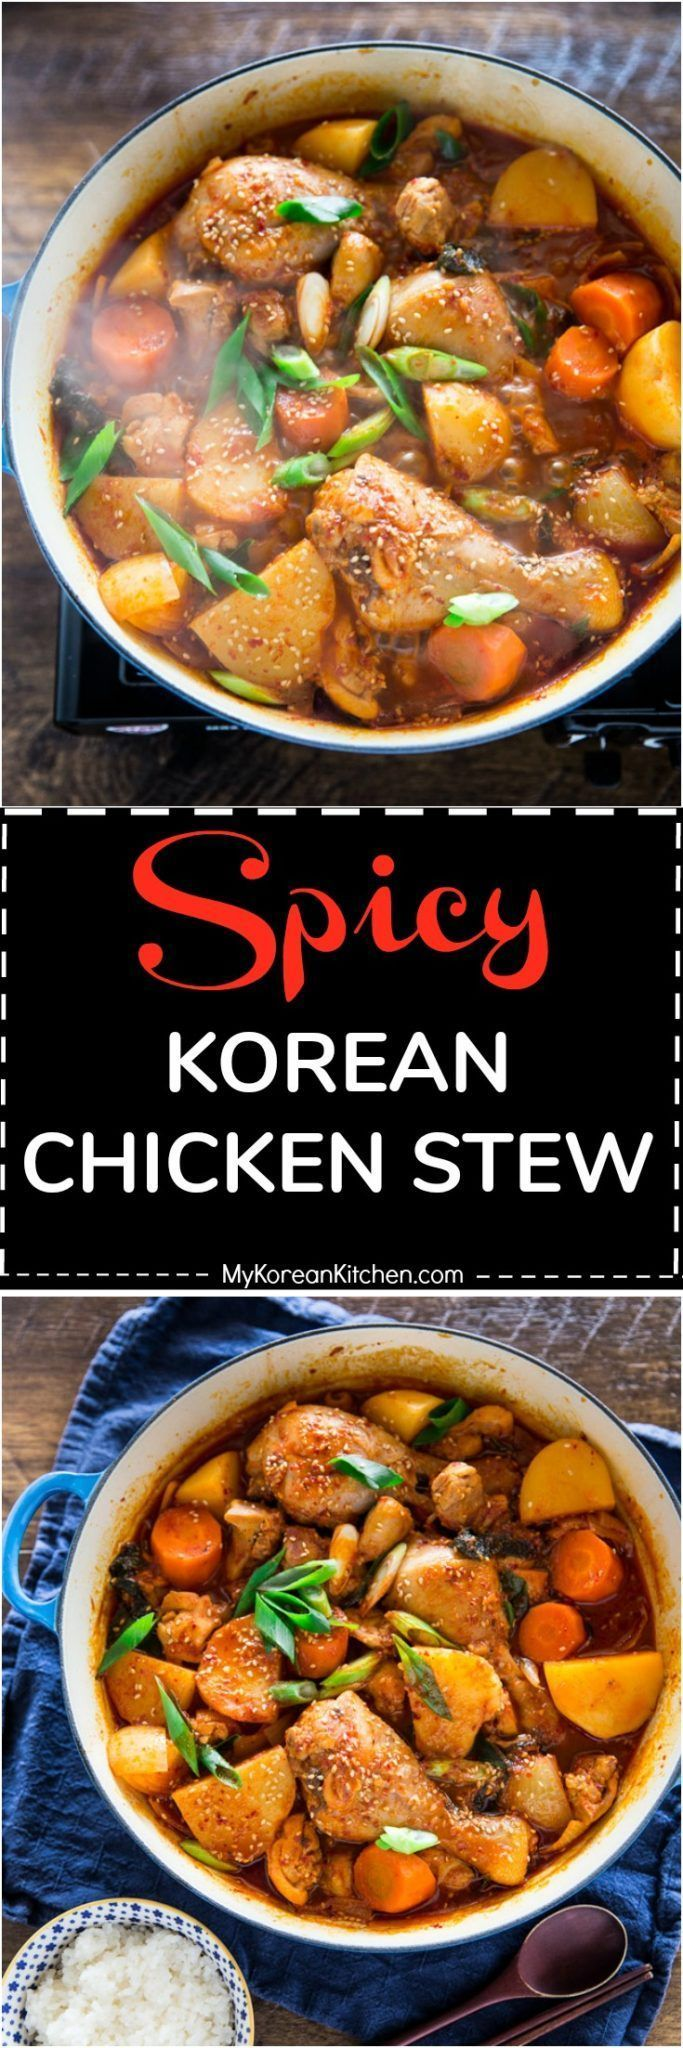 2563 best Asian Food & Recipes images on Pinterest | Cook ...